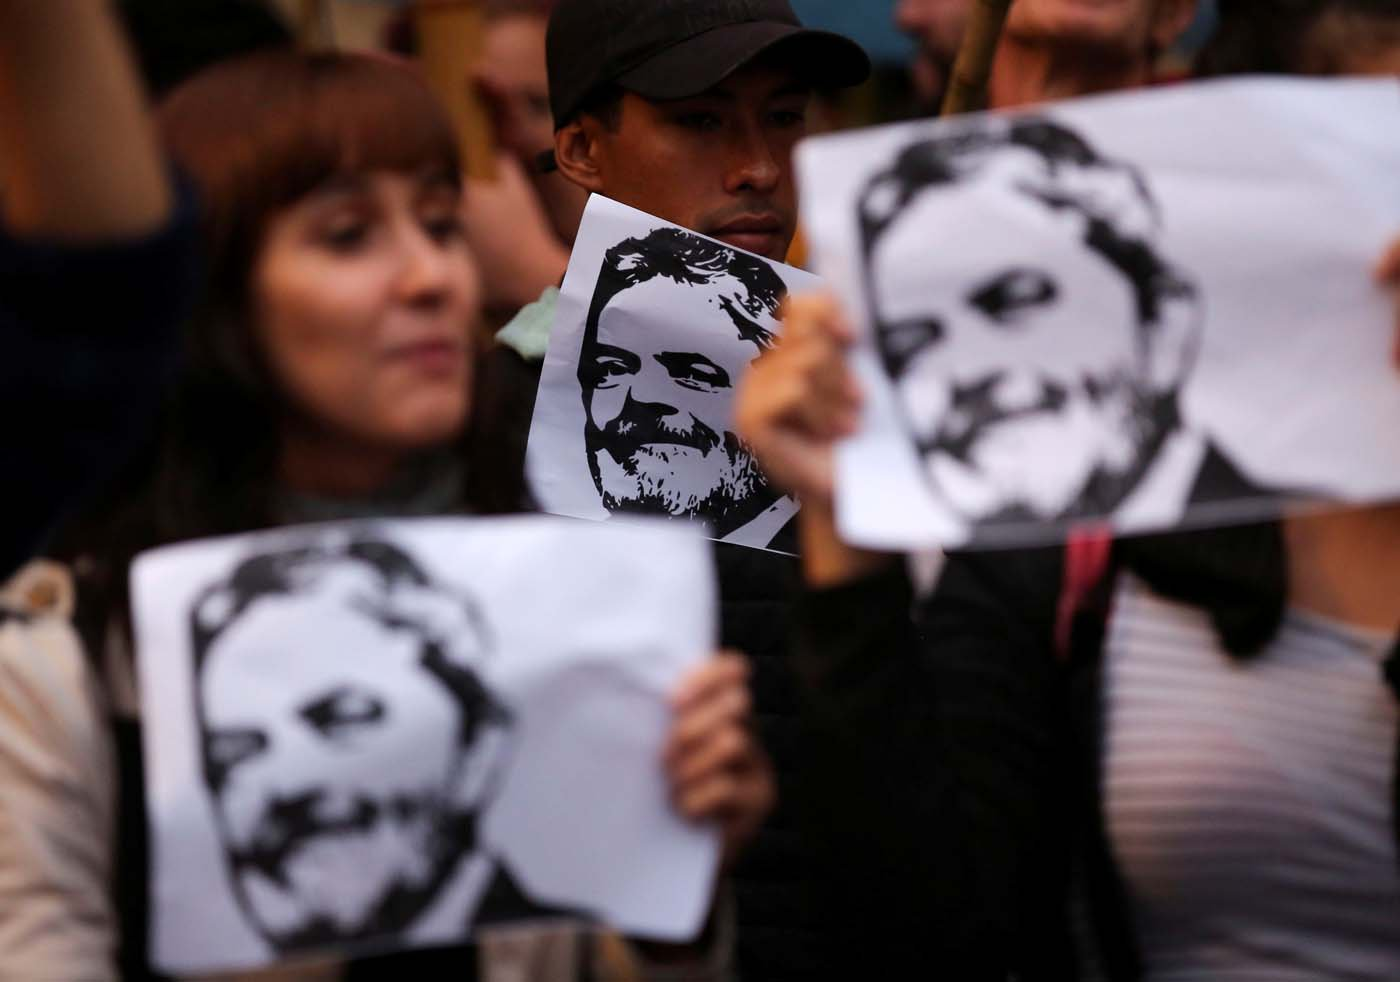 Demonstrators hold pictures of former Brazilian President Luiz Inacio Lula da Silva, in his support, in Buenos Aires, Argentina, April 6, 2018. REUTERS/Agustin Marcarian   NO RESALES. NO ARCHIVE.